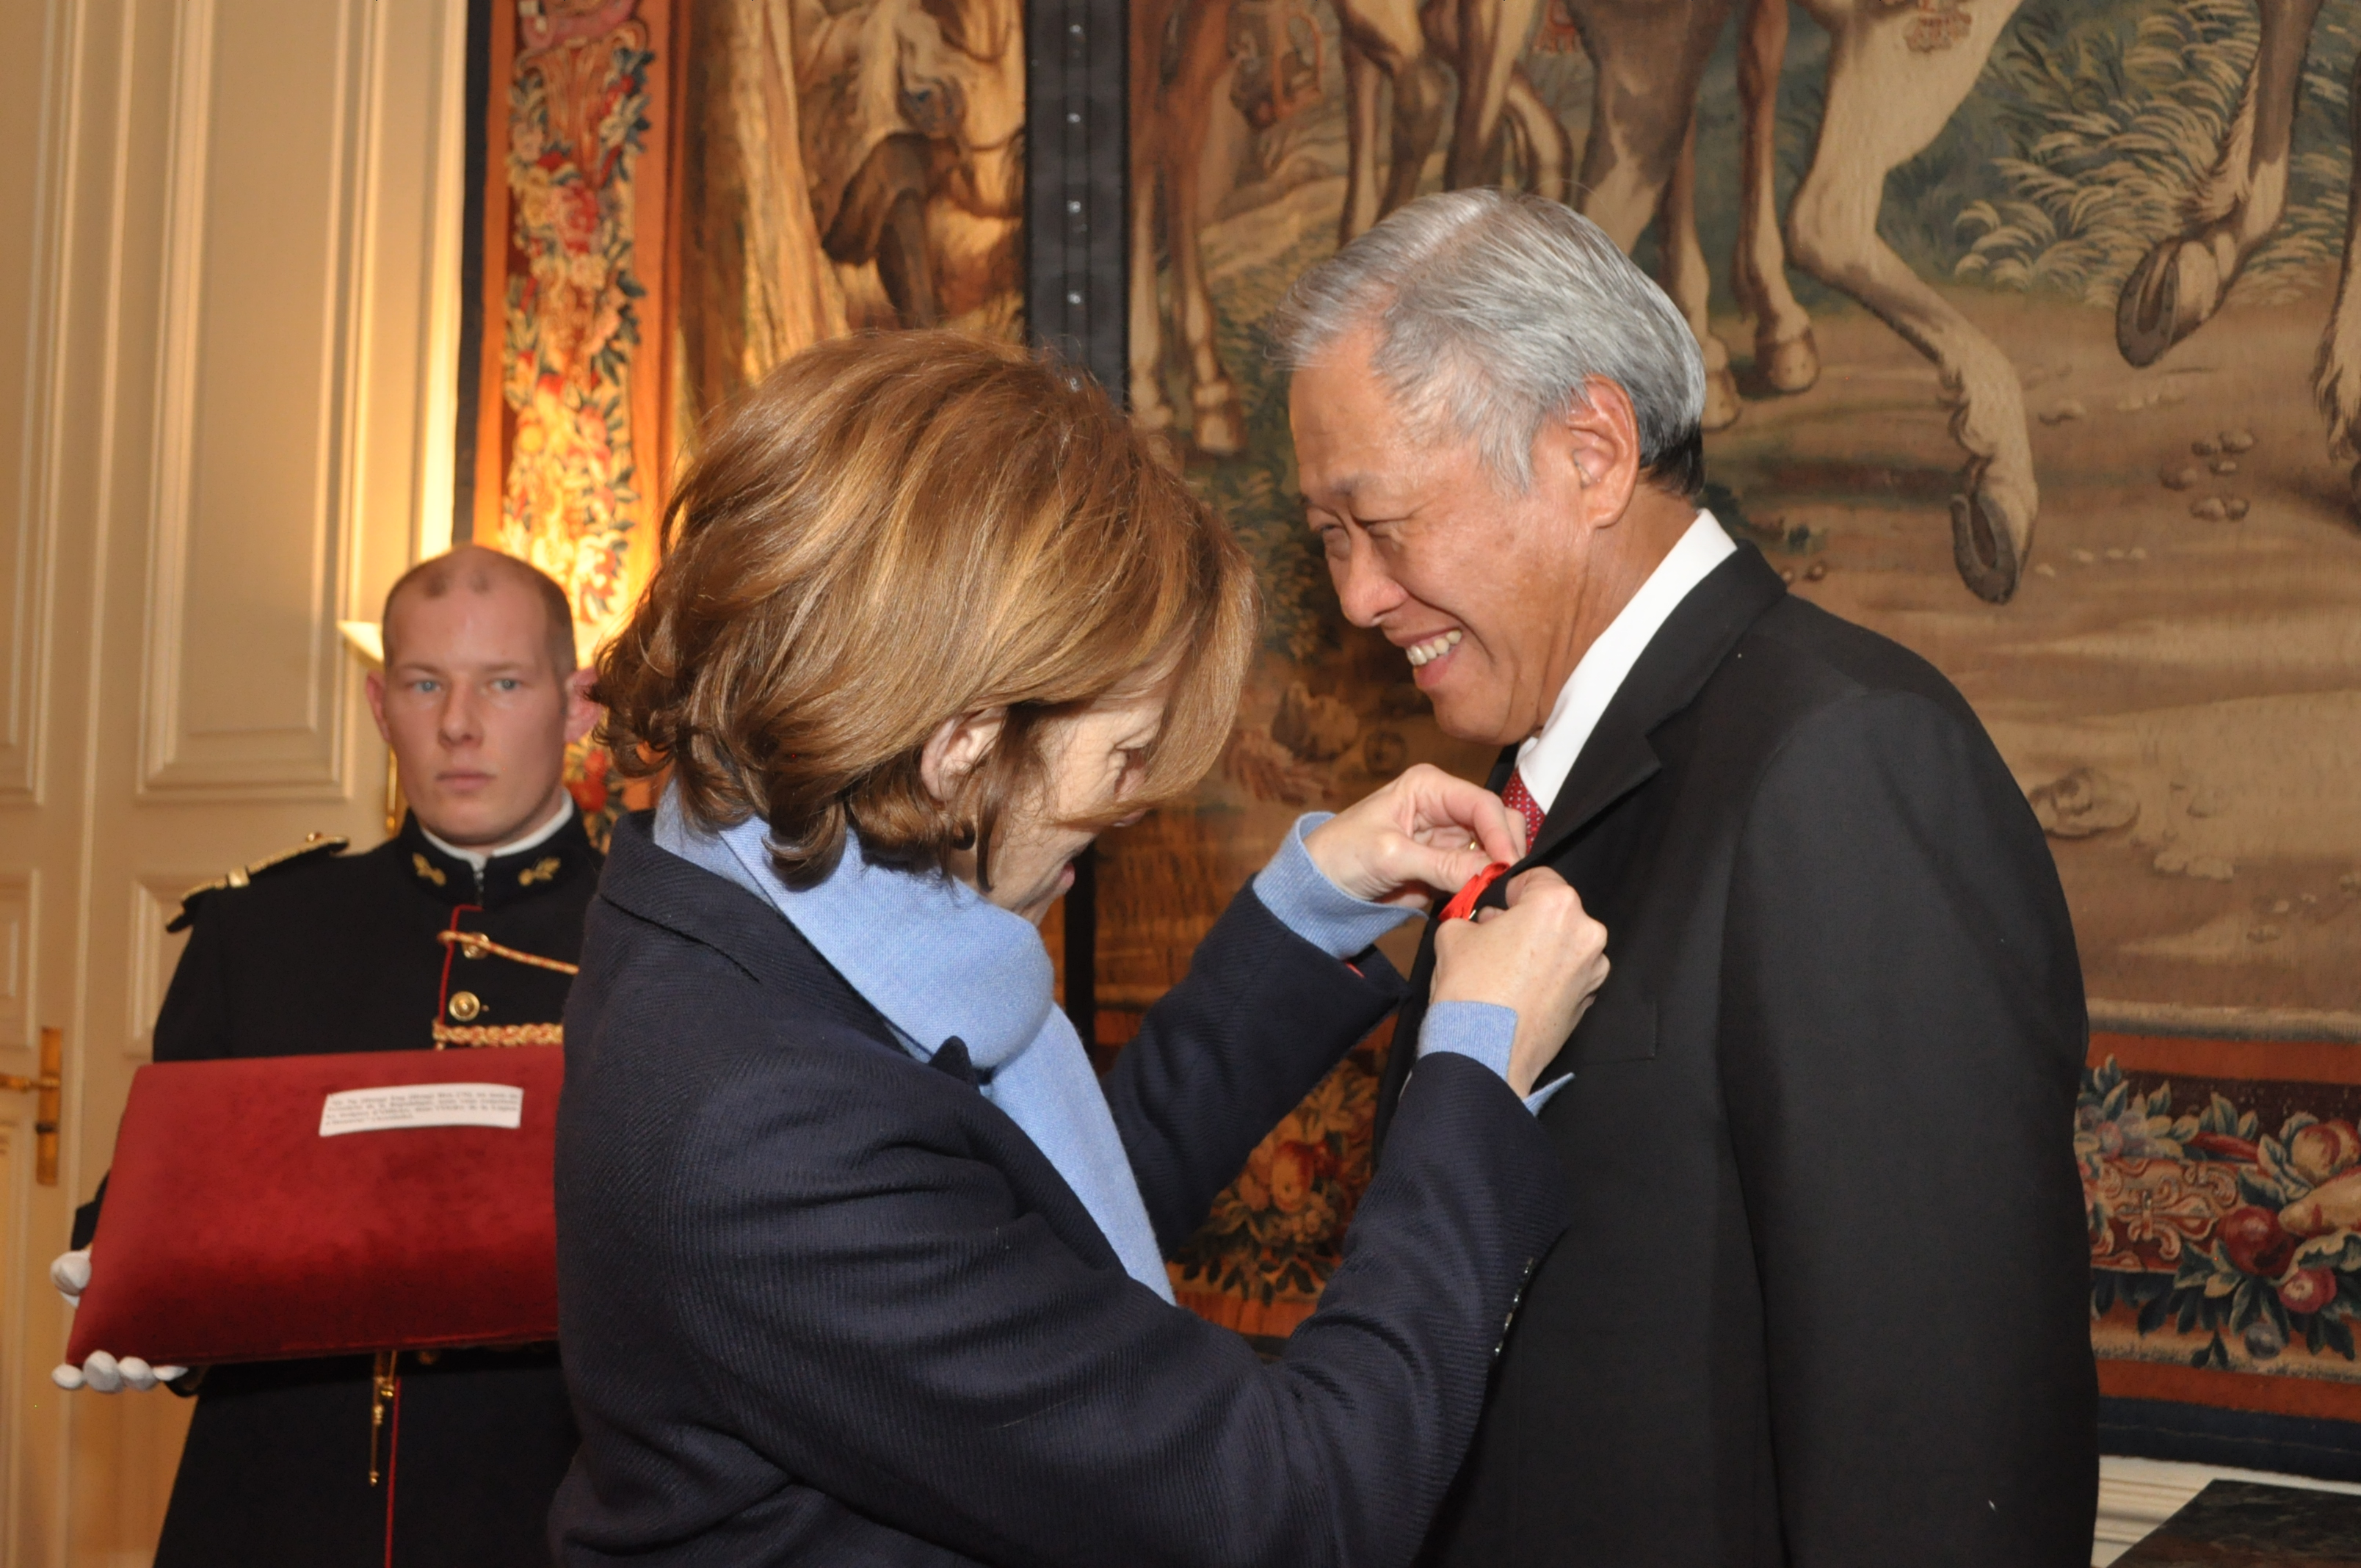 Minister for Defence Dr Ng Eng Hen being conferred the Legion of Honour by Florence Parly, on behalf of President of France Emmanuel Macron.